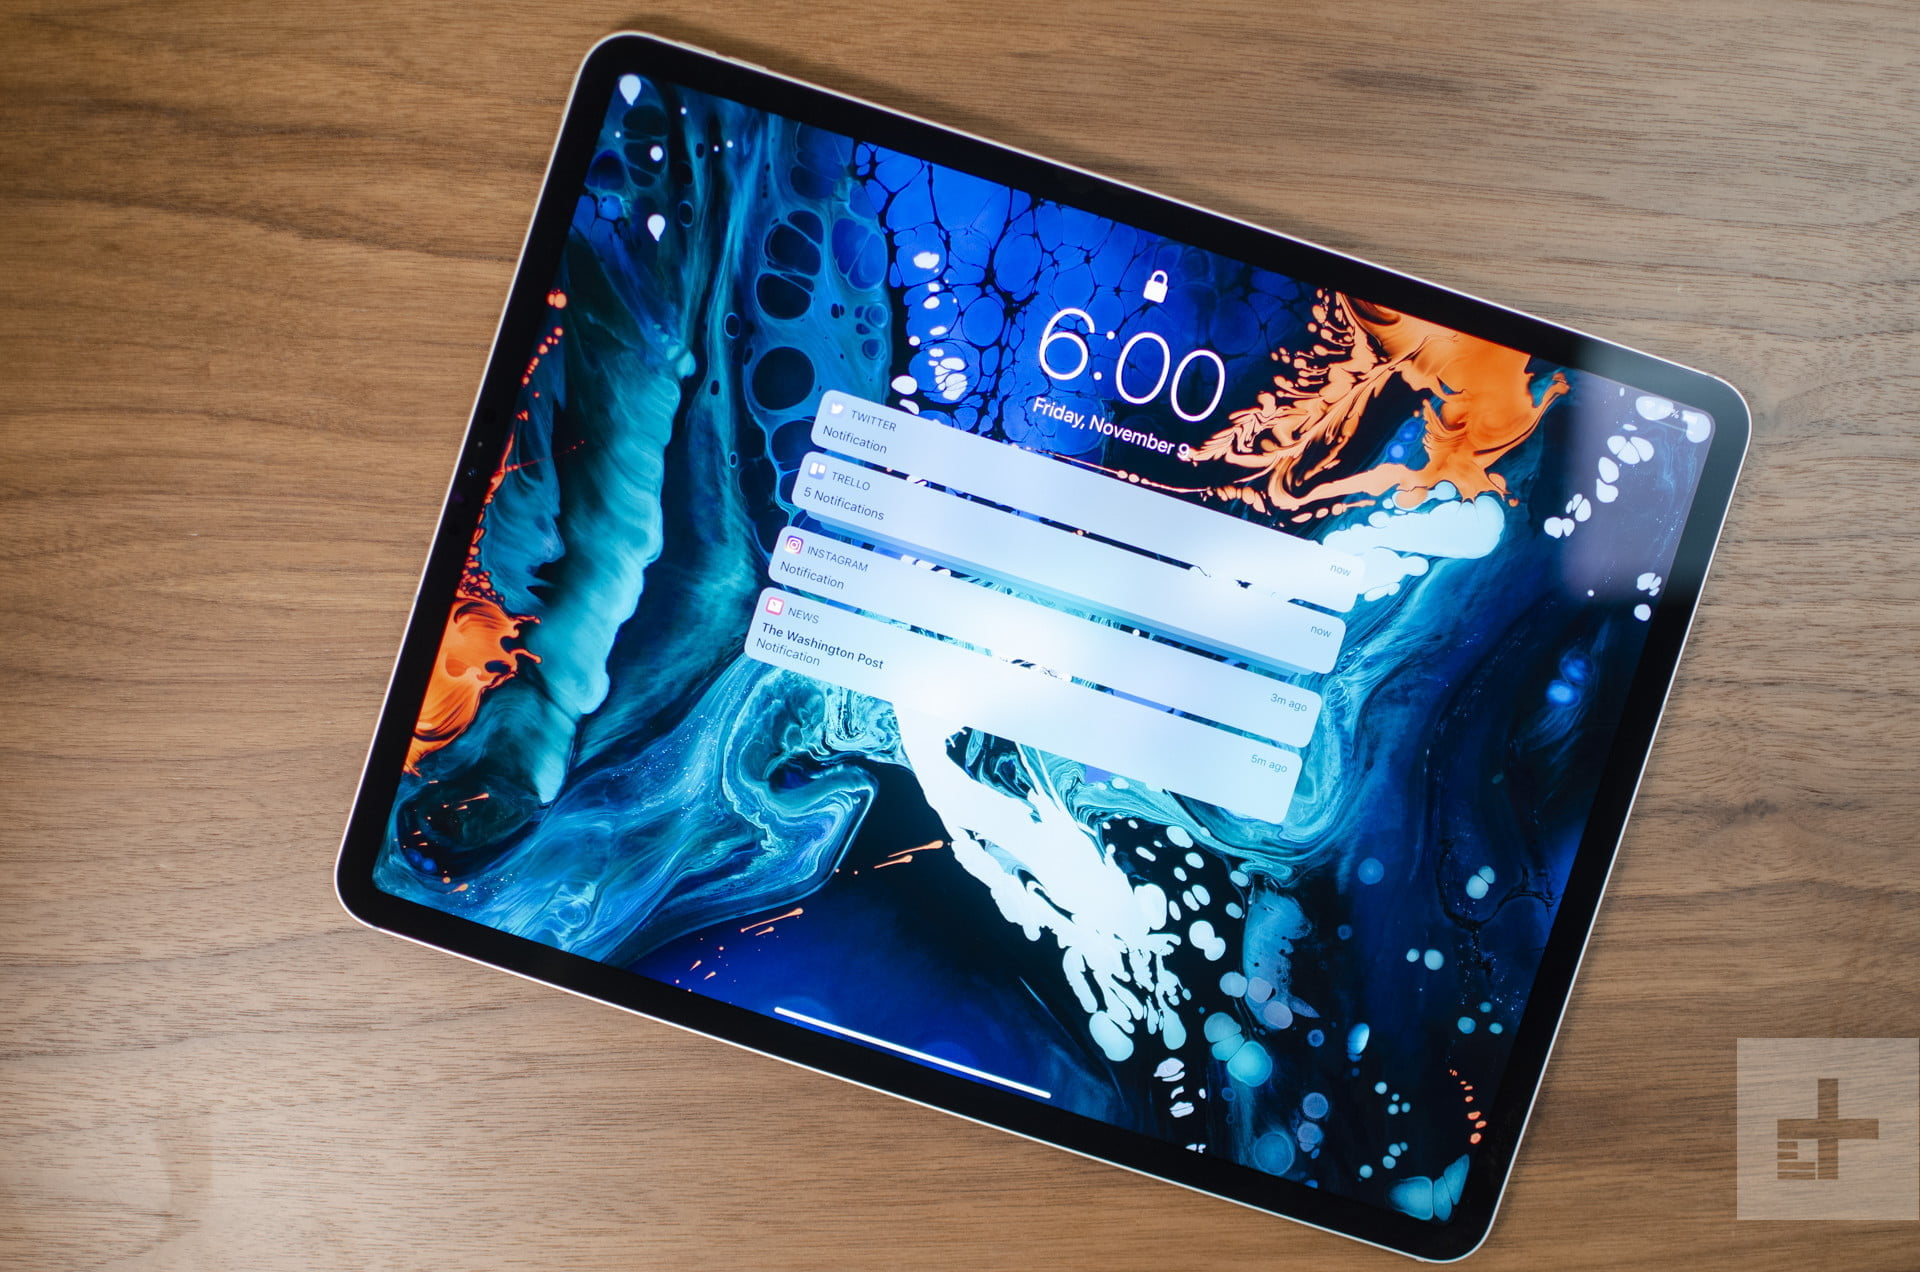 ipad pro 2018 review the best tablet money can buy digital trends. Black Bedroom Furniture Sets. Home Design Ideas